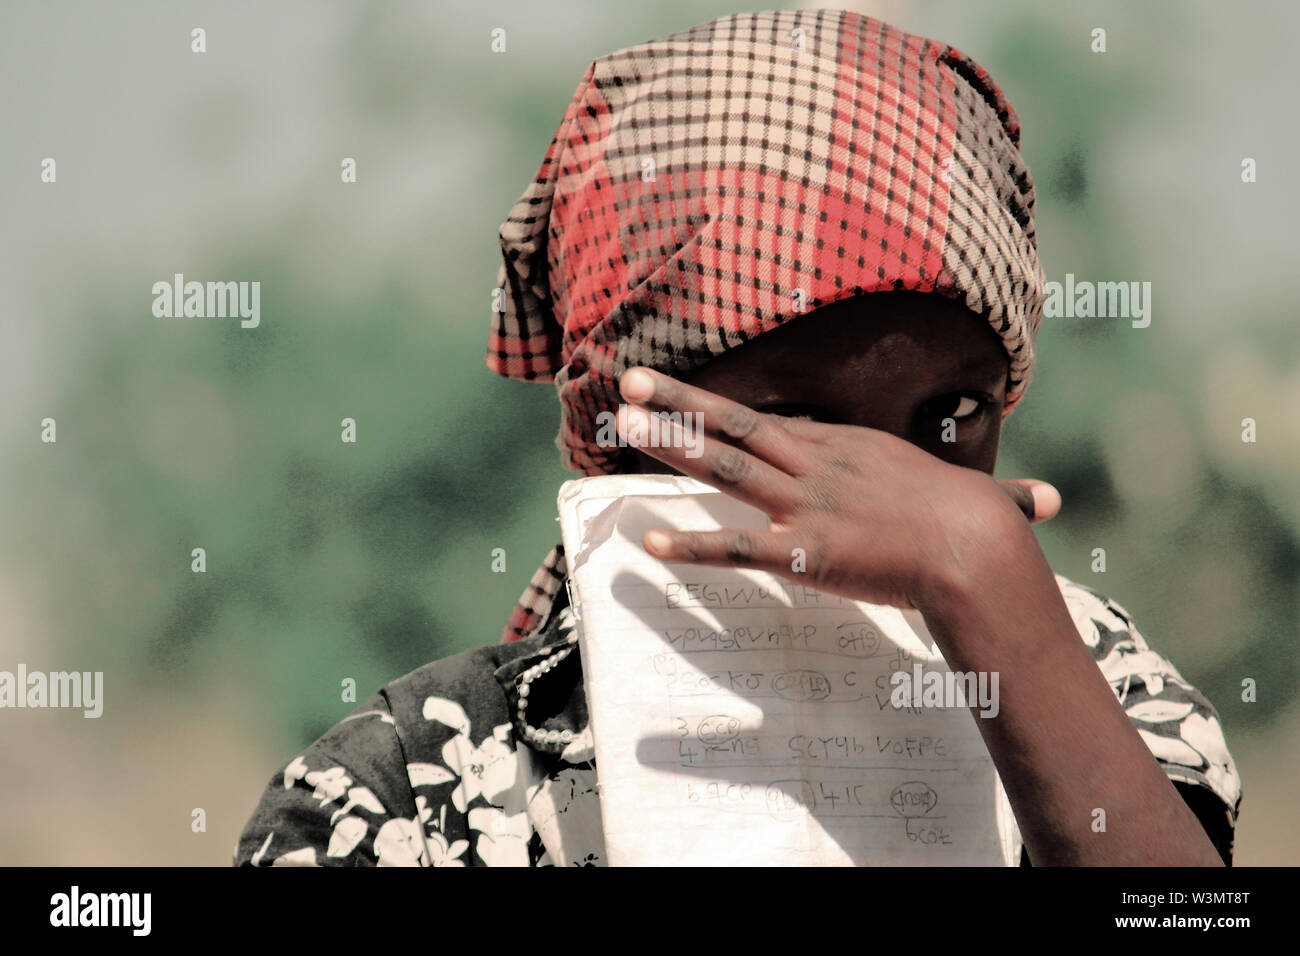 Father of Hauwa Muhammed, nine years old, was slaughtered by members of Boko Haram. Although Hauwa, her two other siblings and her mother escaped from Borno to Adamawa, like many other displaced children, learning in school is difficult because of her occasional traumatic state of mind. - Stock Image